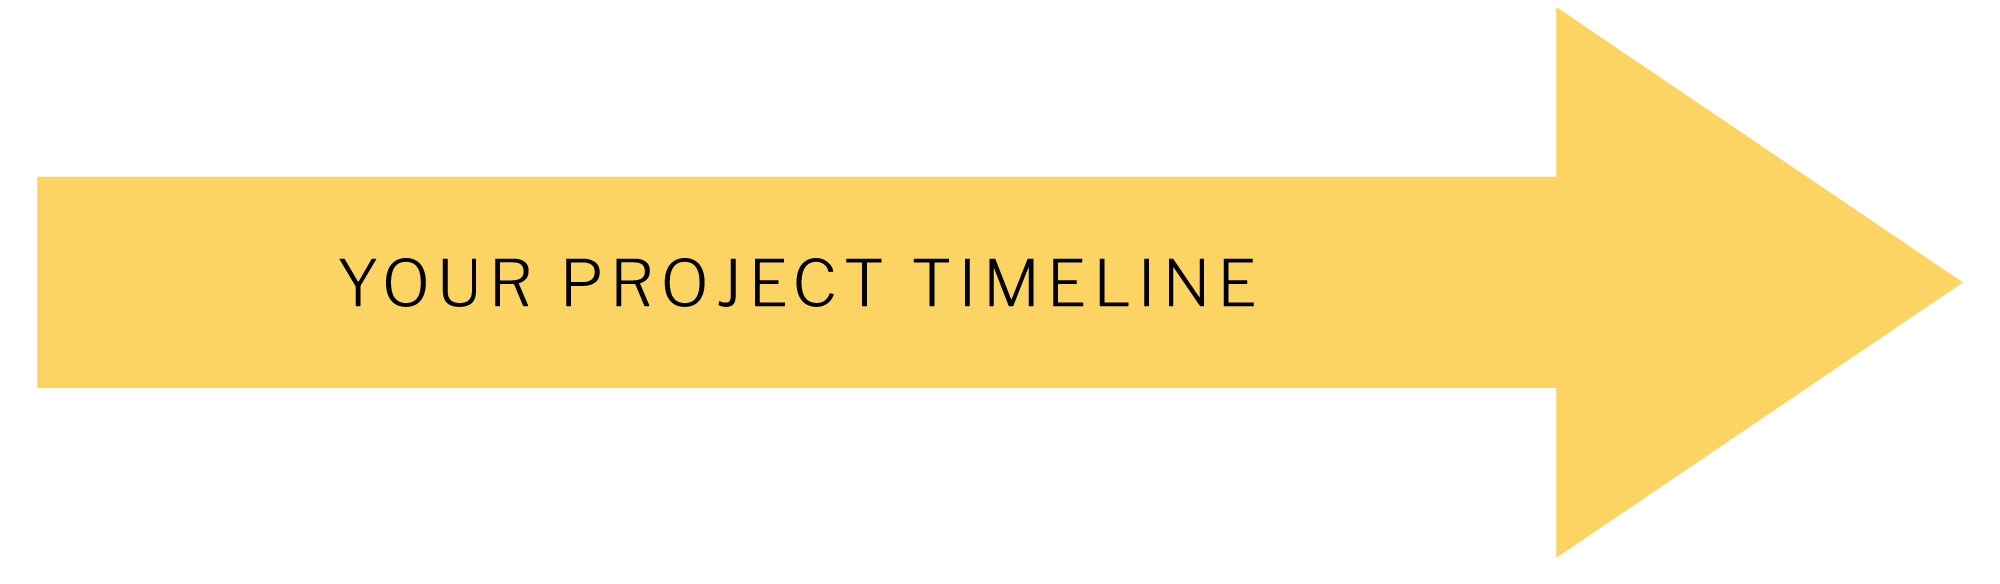 PROJECT-TIMELINE-GRAPHIC.jpg